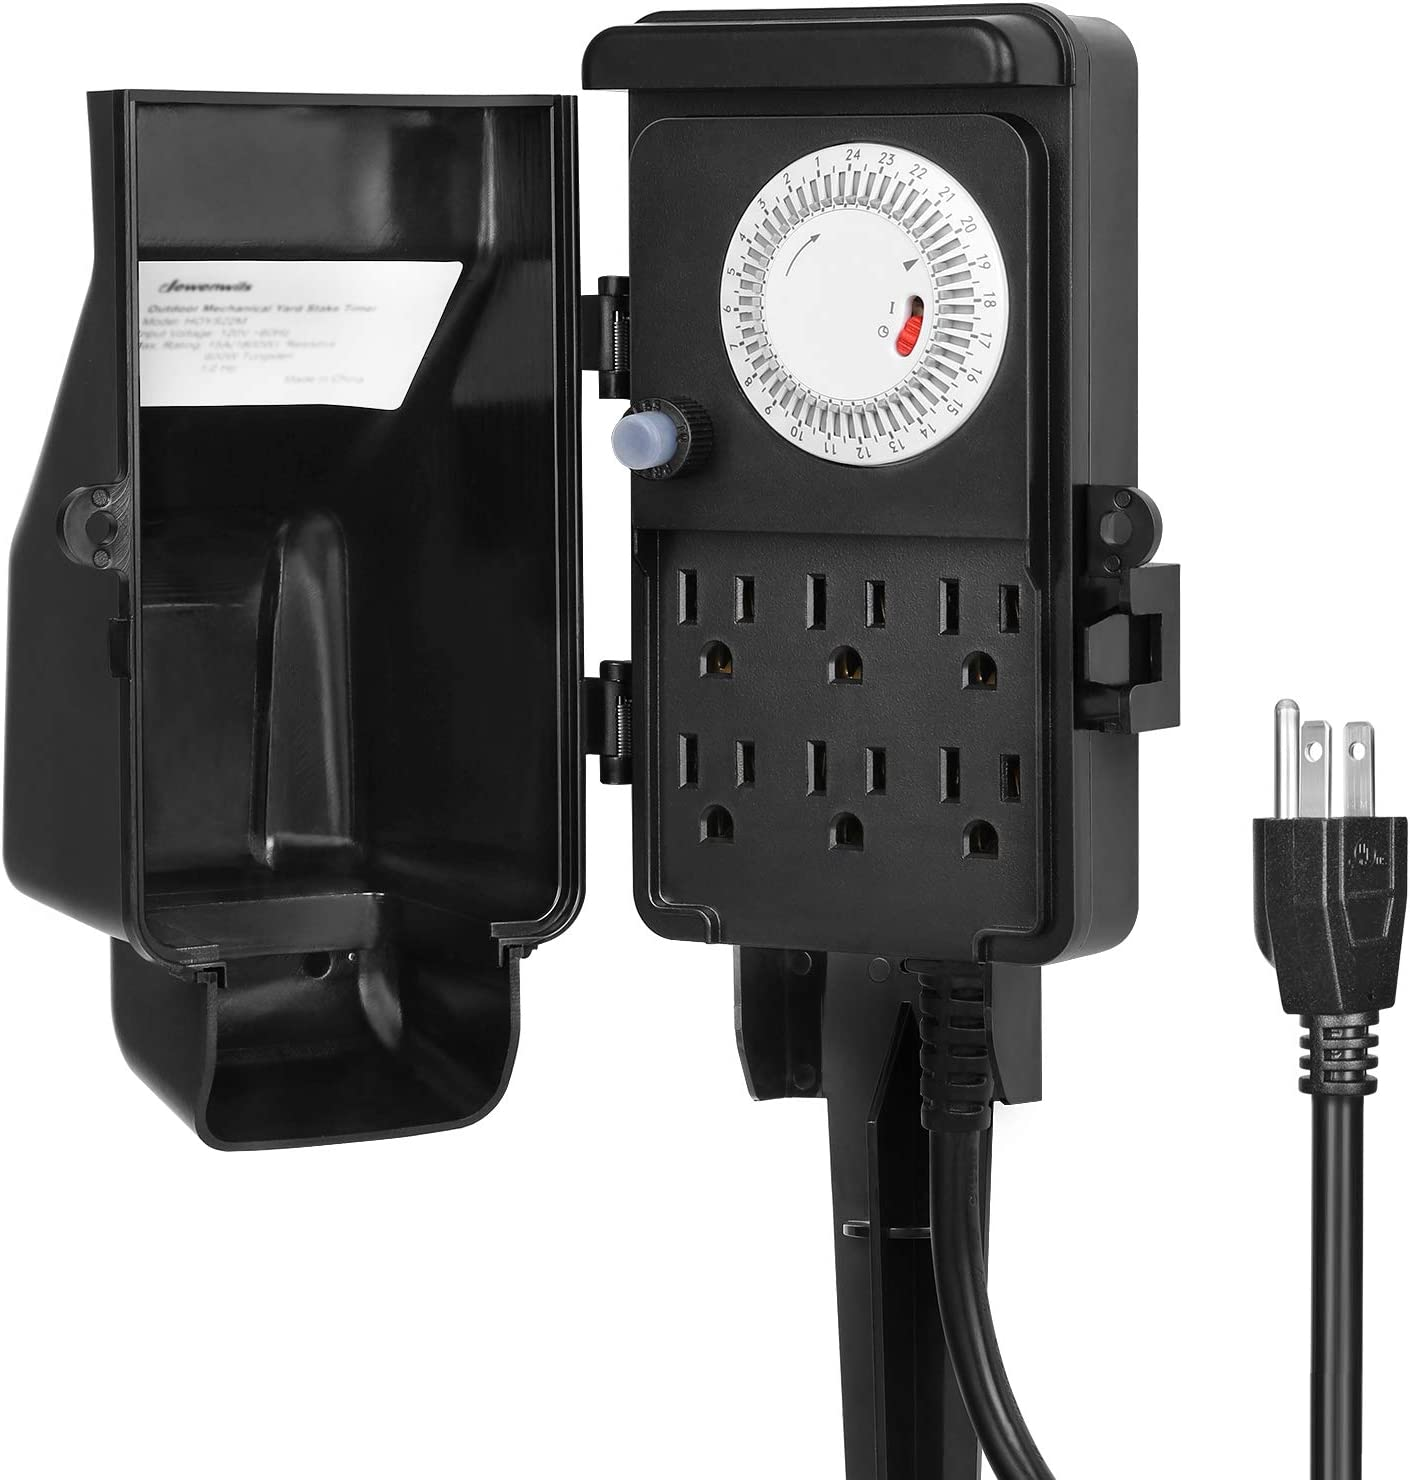 DEWENWILS Outdoor Mechanical Power Strip Timer, Outdoor Yard Stake Timer, Waterproof, 6 Grounded Outlets, 6 ft Extension Cord, Mechanical Timer for Pool, Pumps, Ponds, Fountain, 1800W/15A Heavy Duty